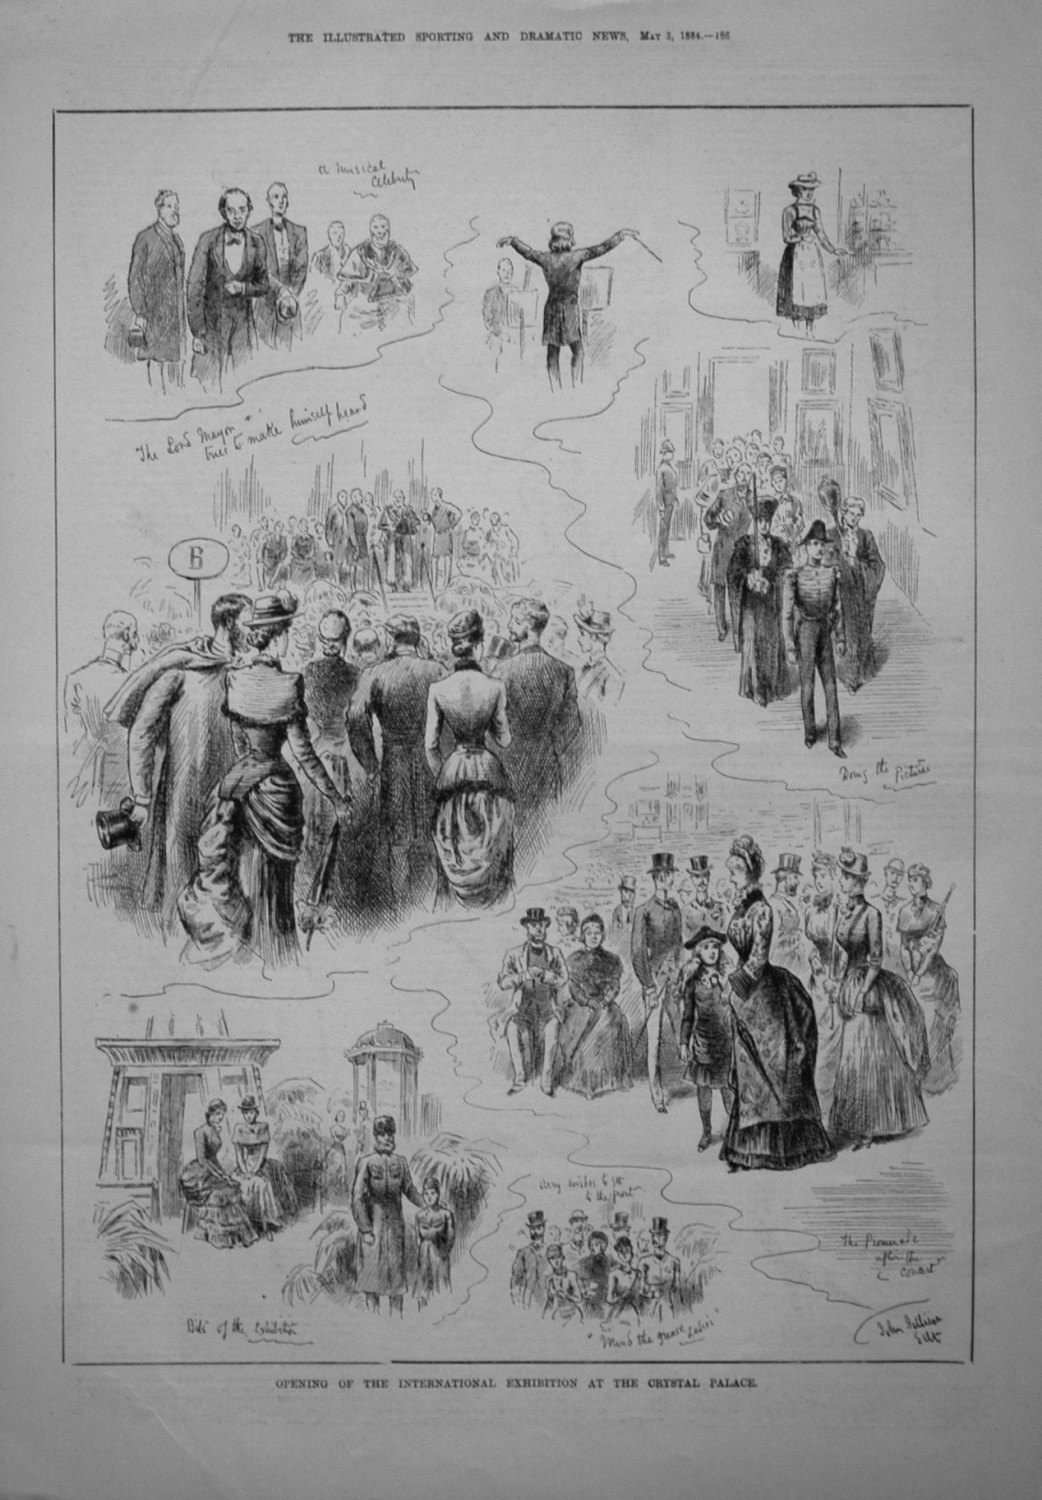 Opening of the International Exhibition at the Crystal Palace. 1884